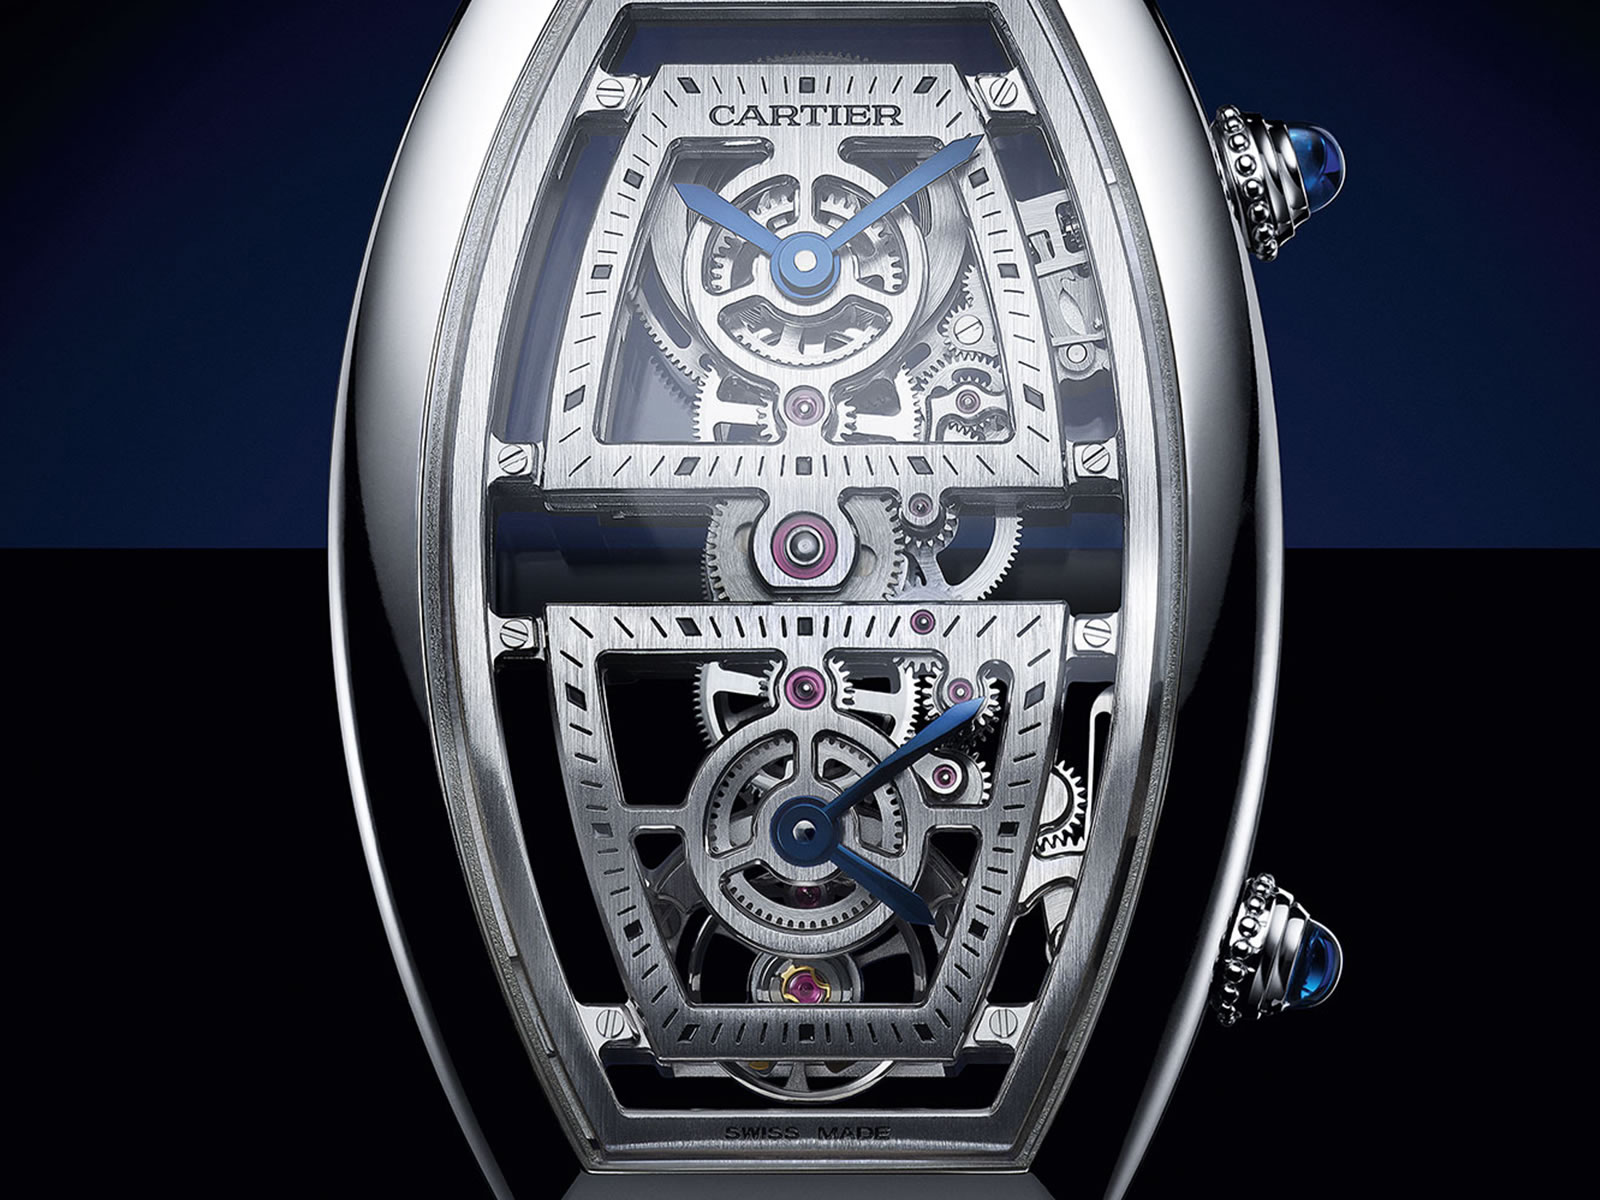 wgtn0005-cartier-prive-tonneau-time-only-skeleton-dual-time-1-.jpg